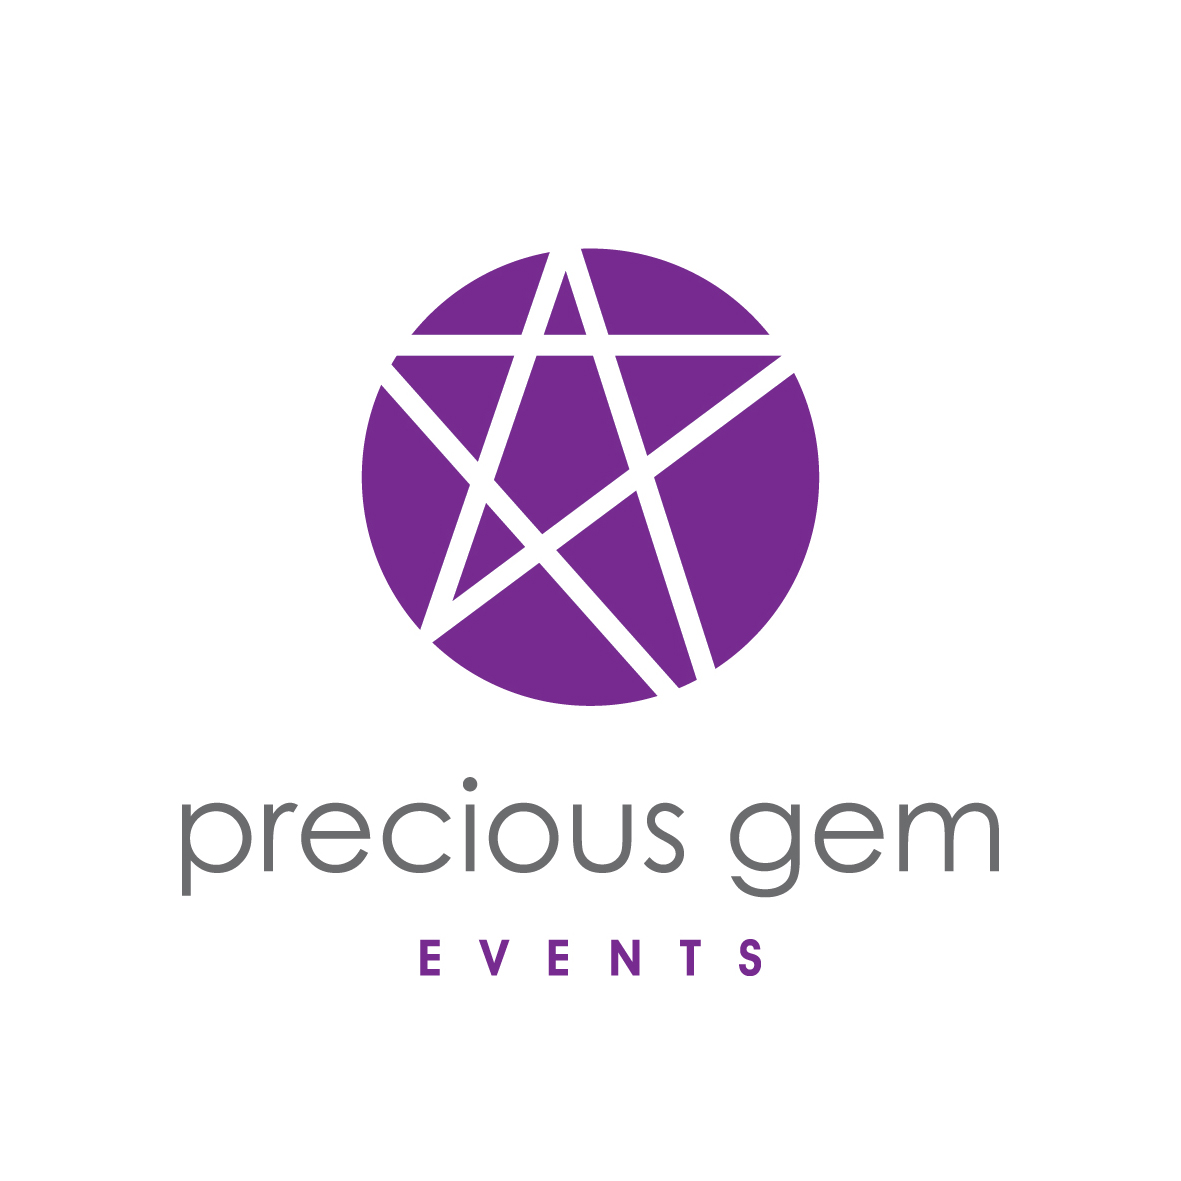 Precious Gem Events's logo